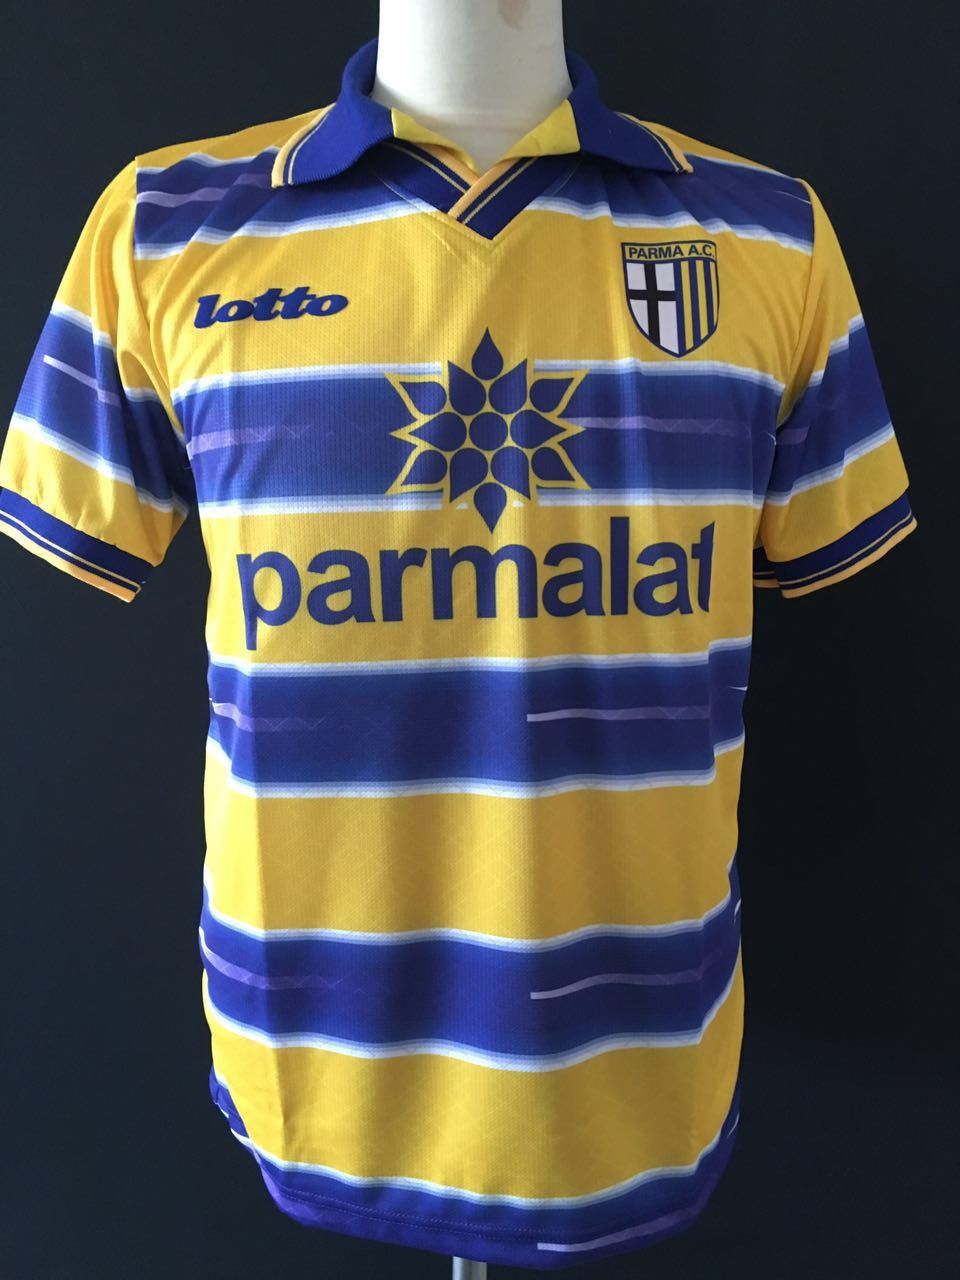 0338895e34ac 1998/99 Parma Home Shirt | Football/Soccer kit | Football jerseys ...